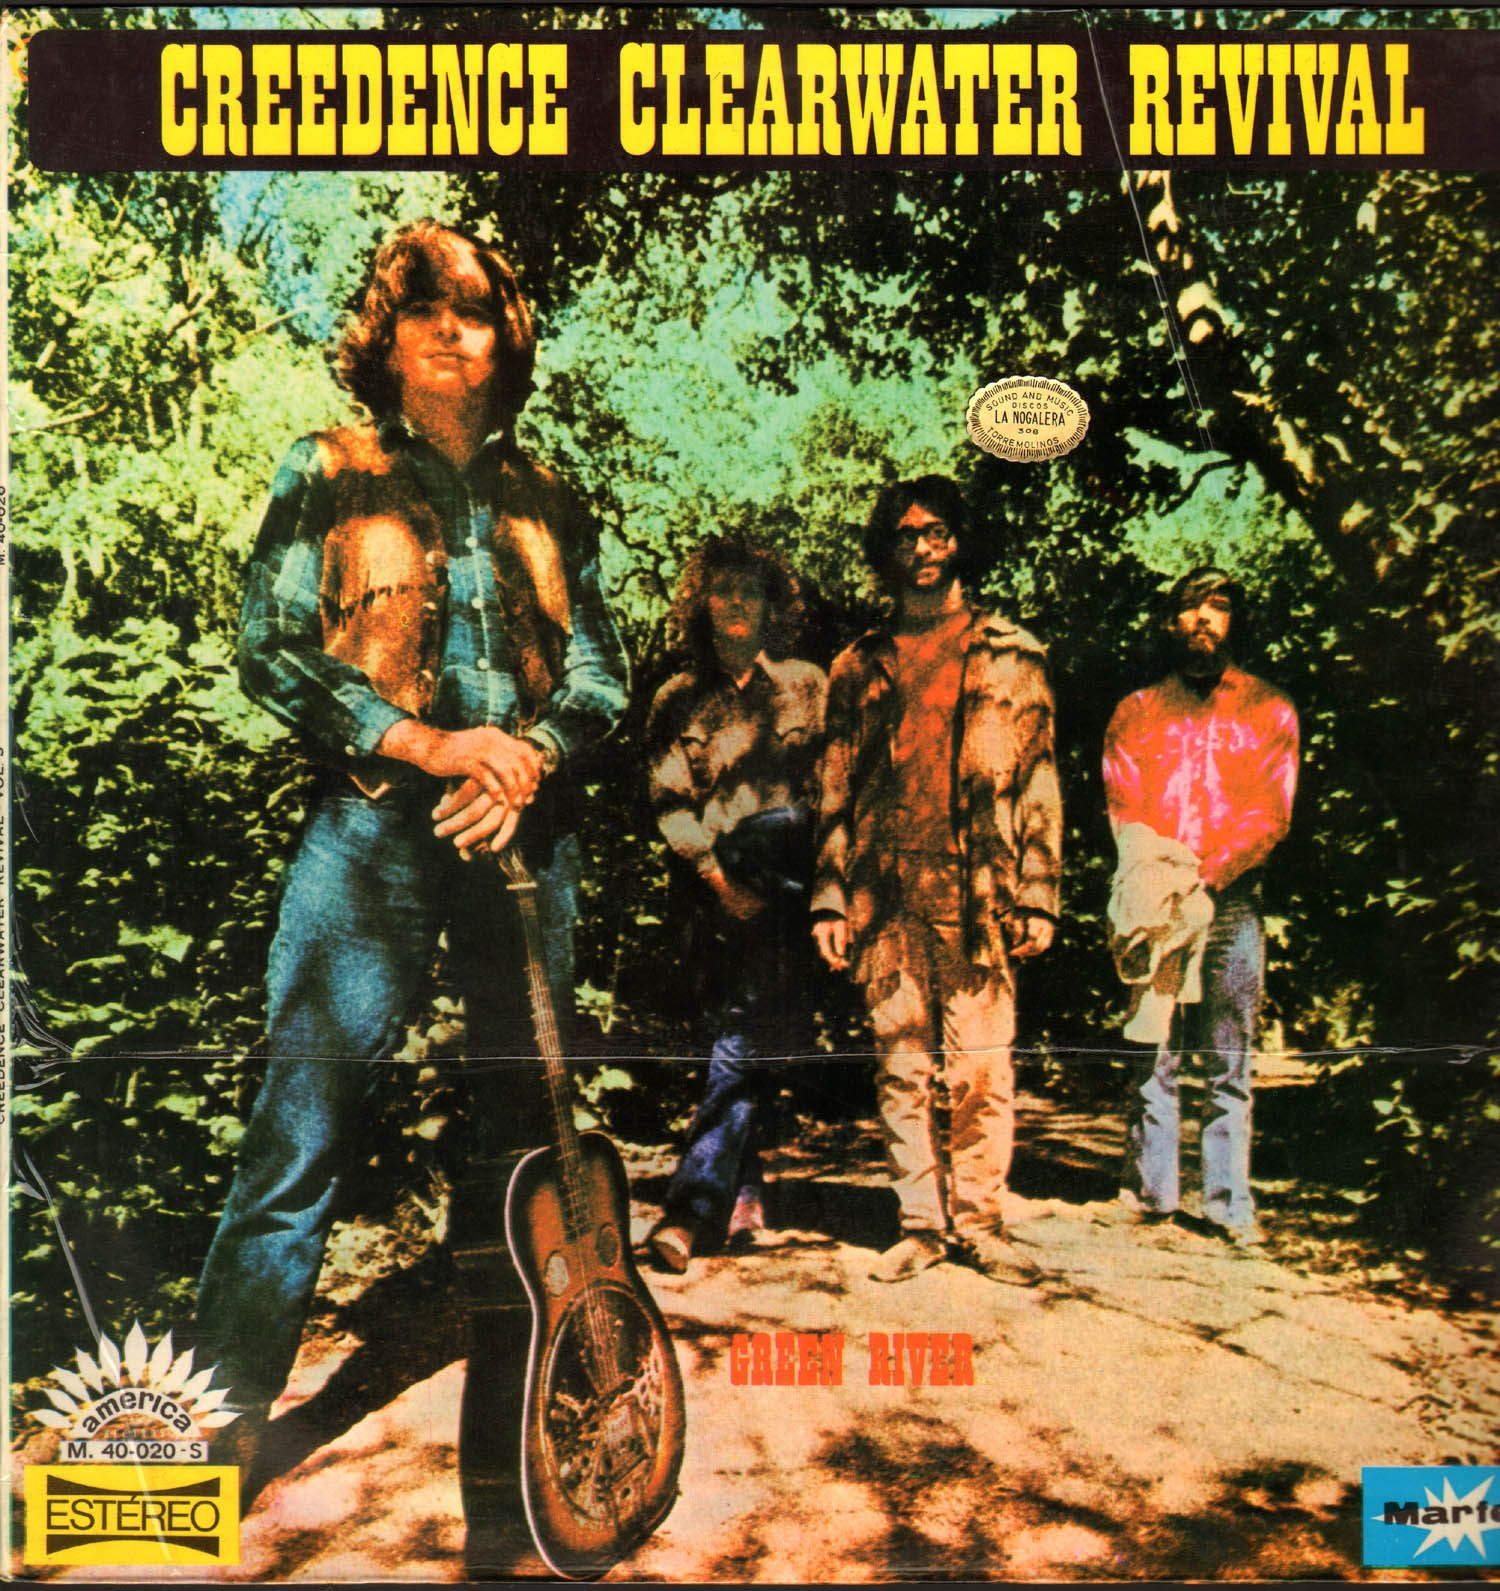 Creedence Clearwater Revival Lp Green River 1969